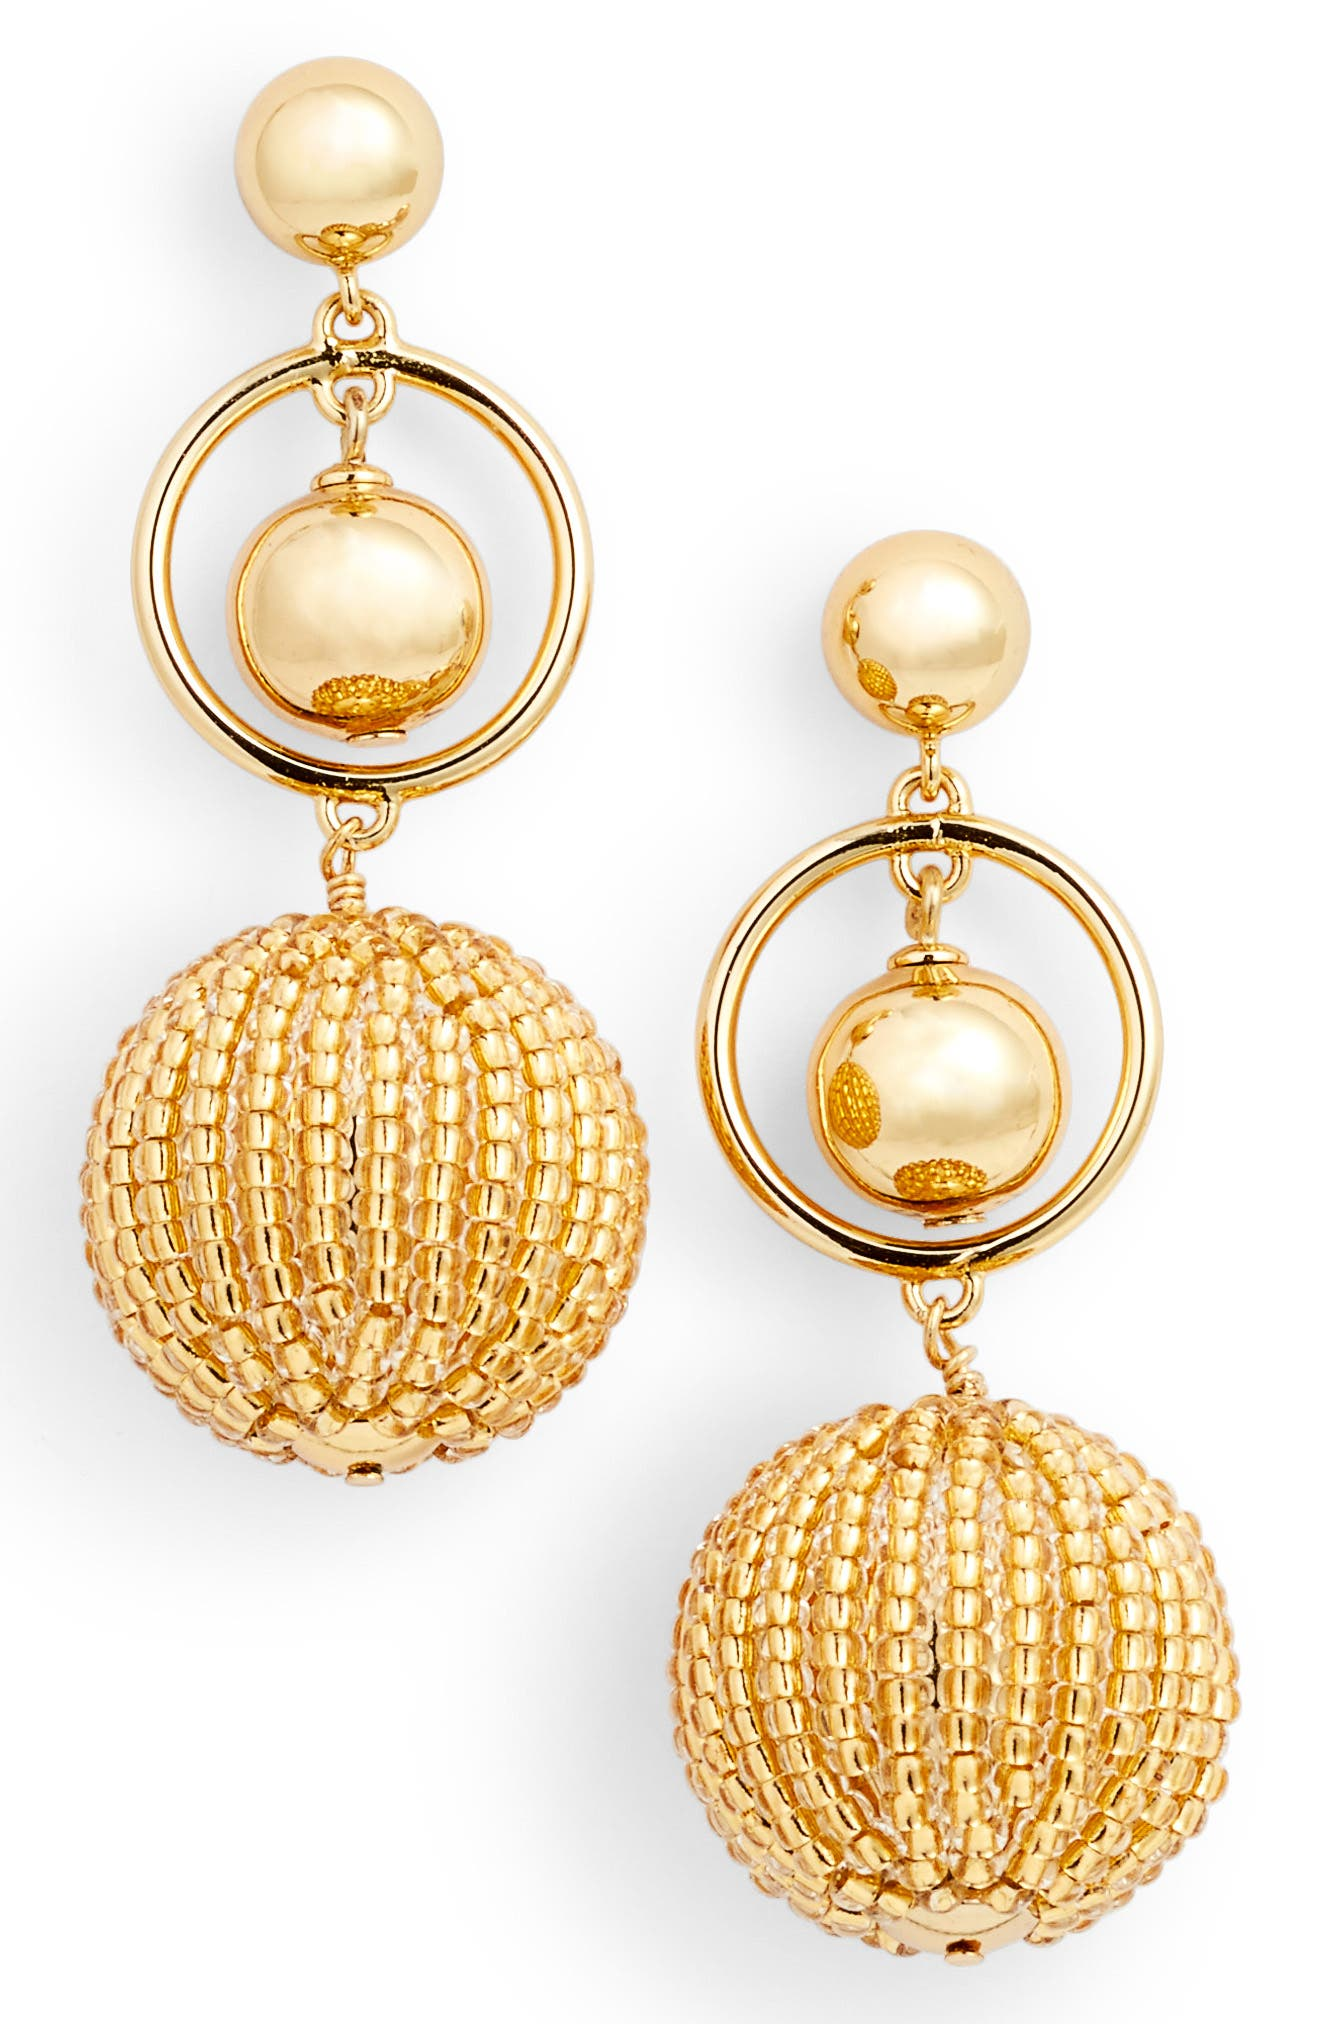 Kate Spade Beads And Baubles Drop Earrings In Gold